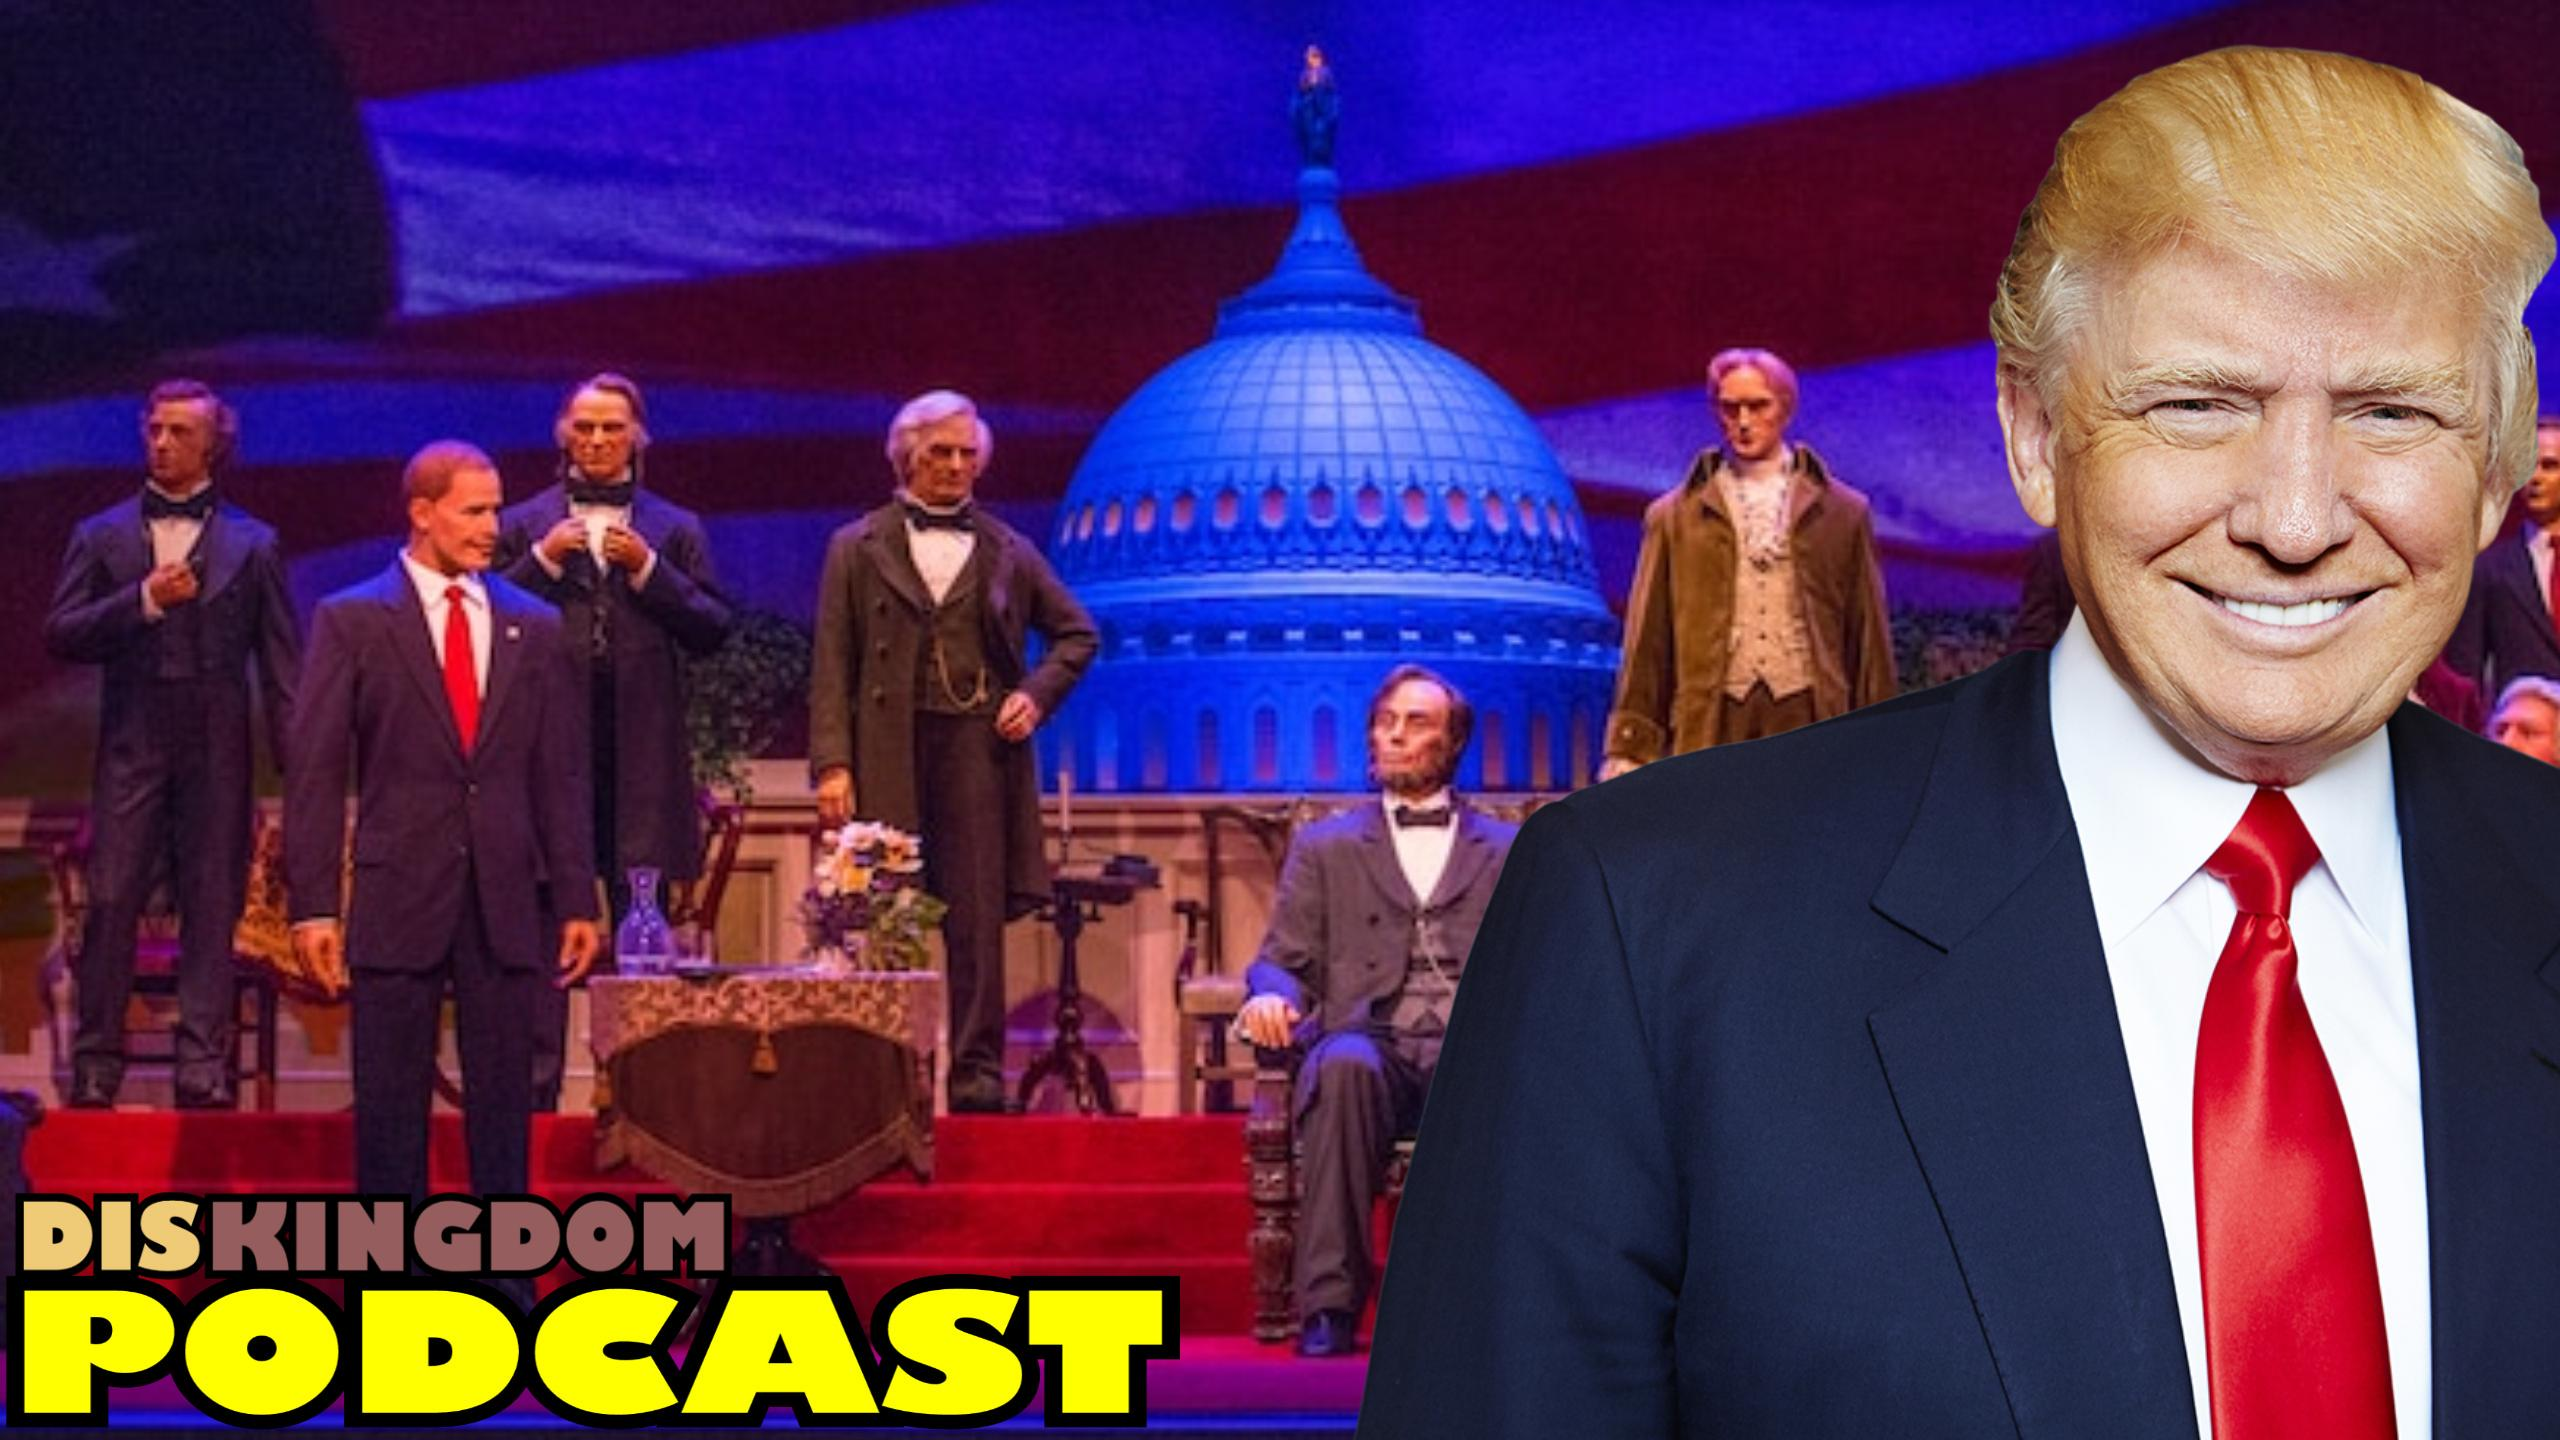 Donald Trump Will Most Likely Not Speak In The Hall Of Presidents | DisKingdom Podcast